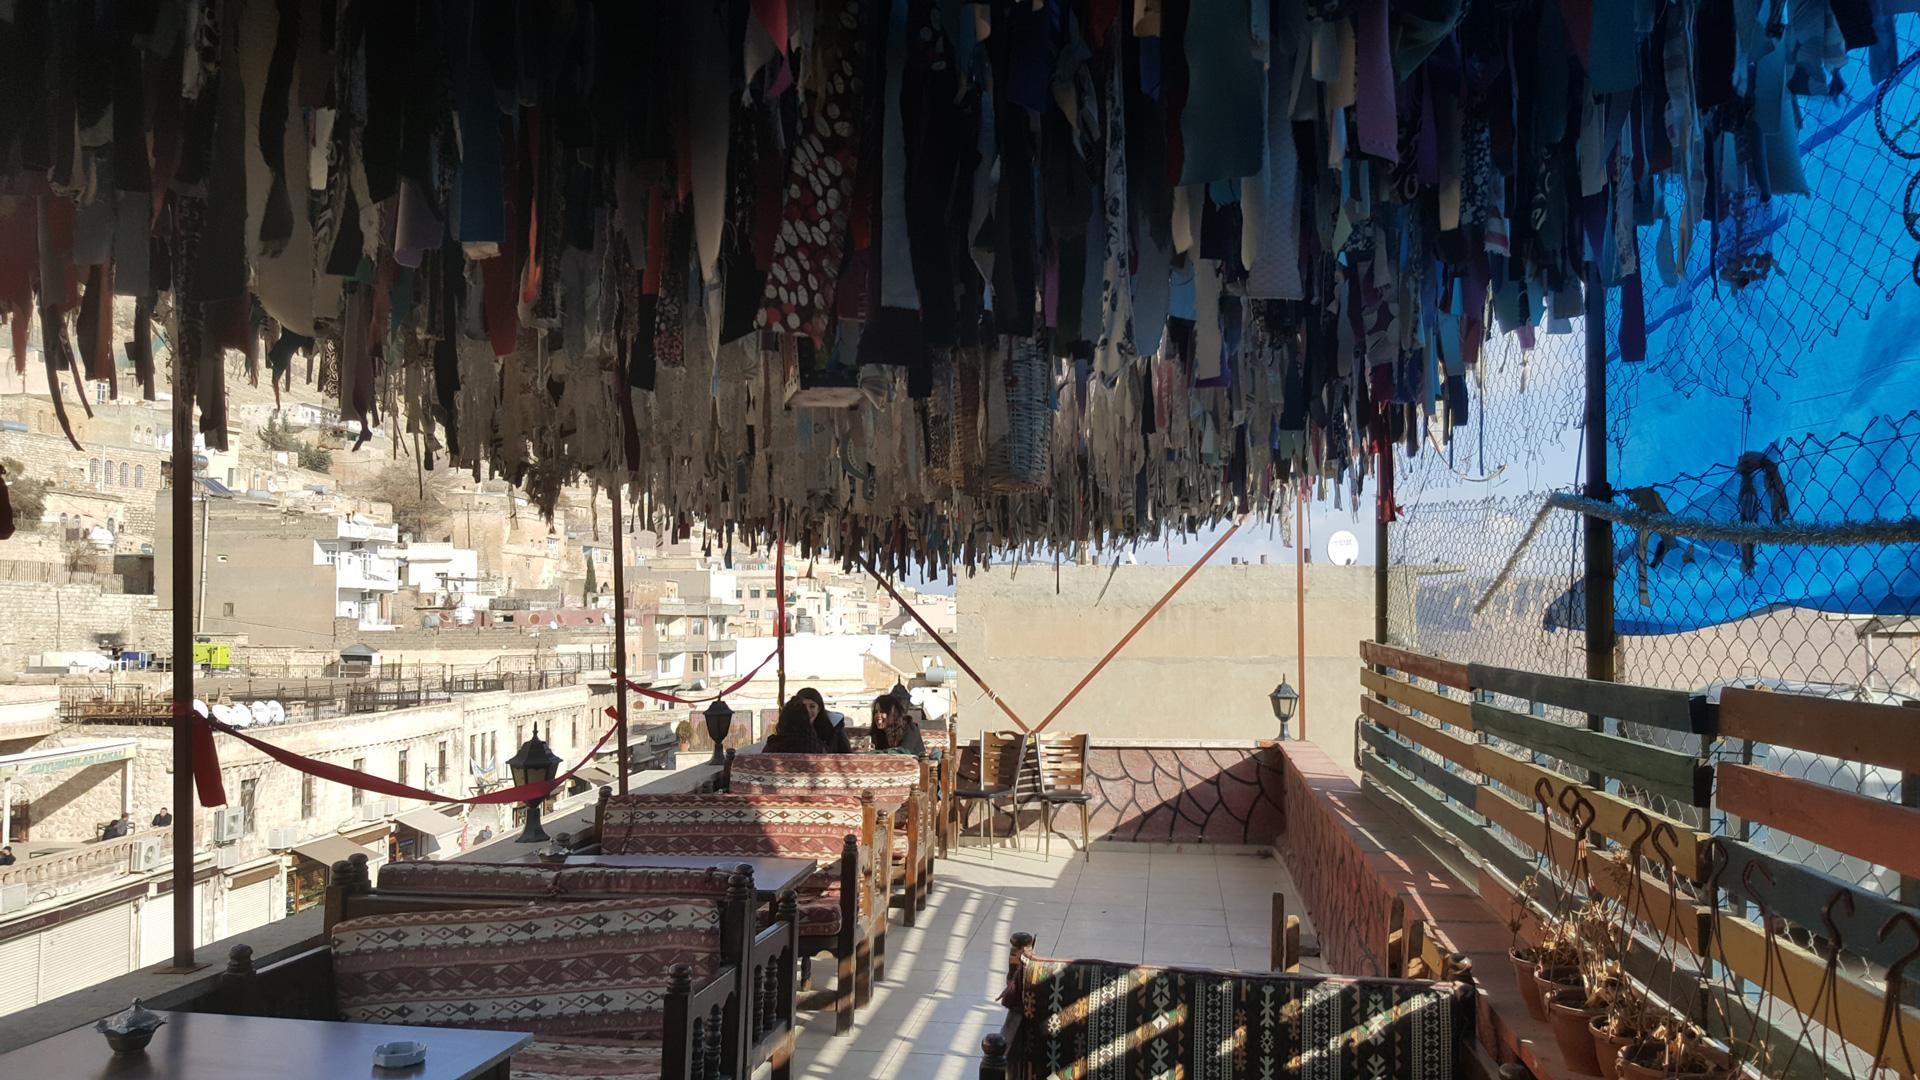 Secret cafes in the old part of Mardin which is not easy to find